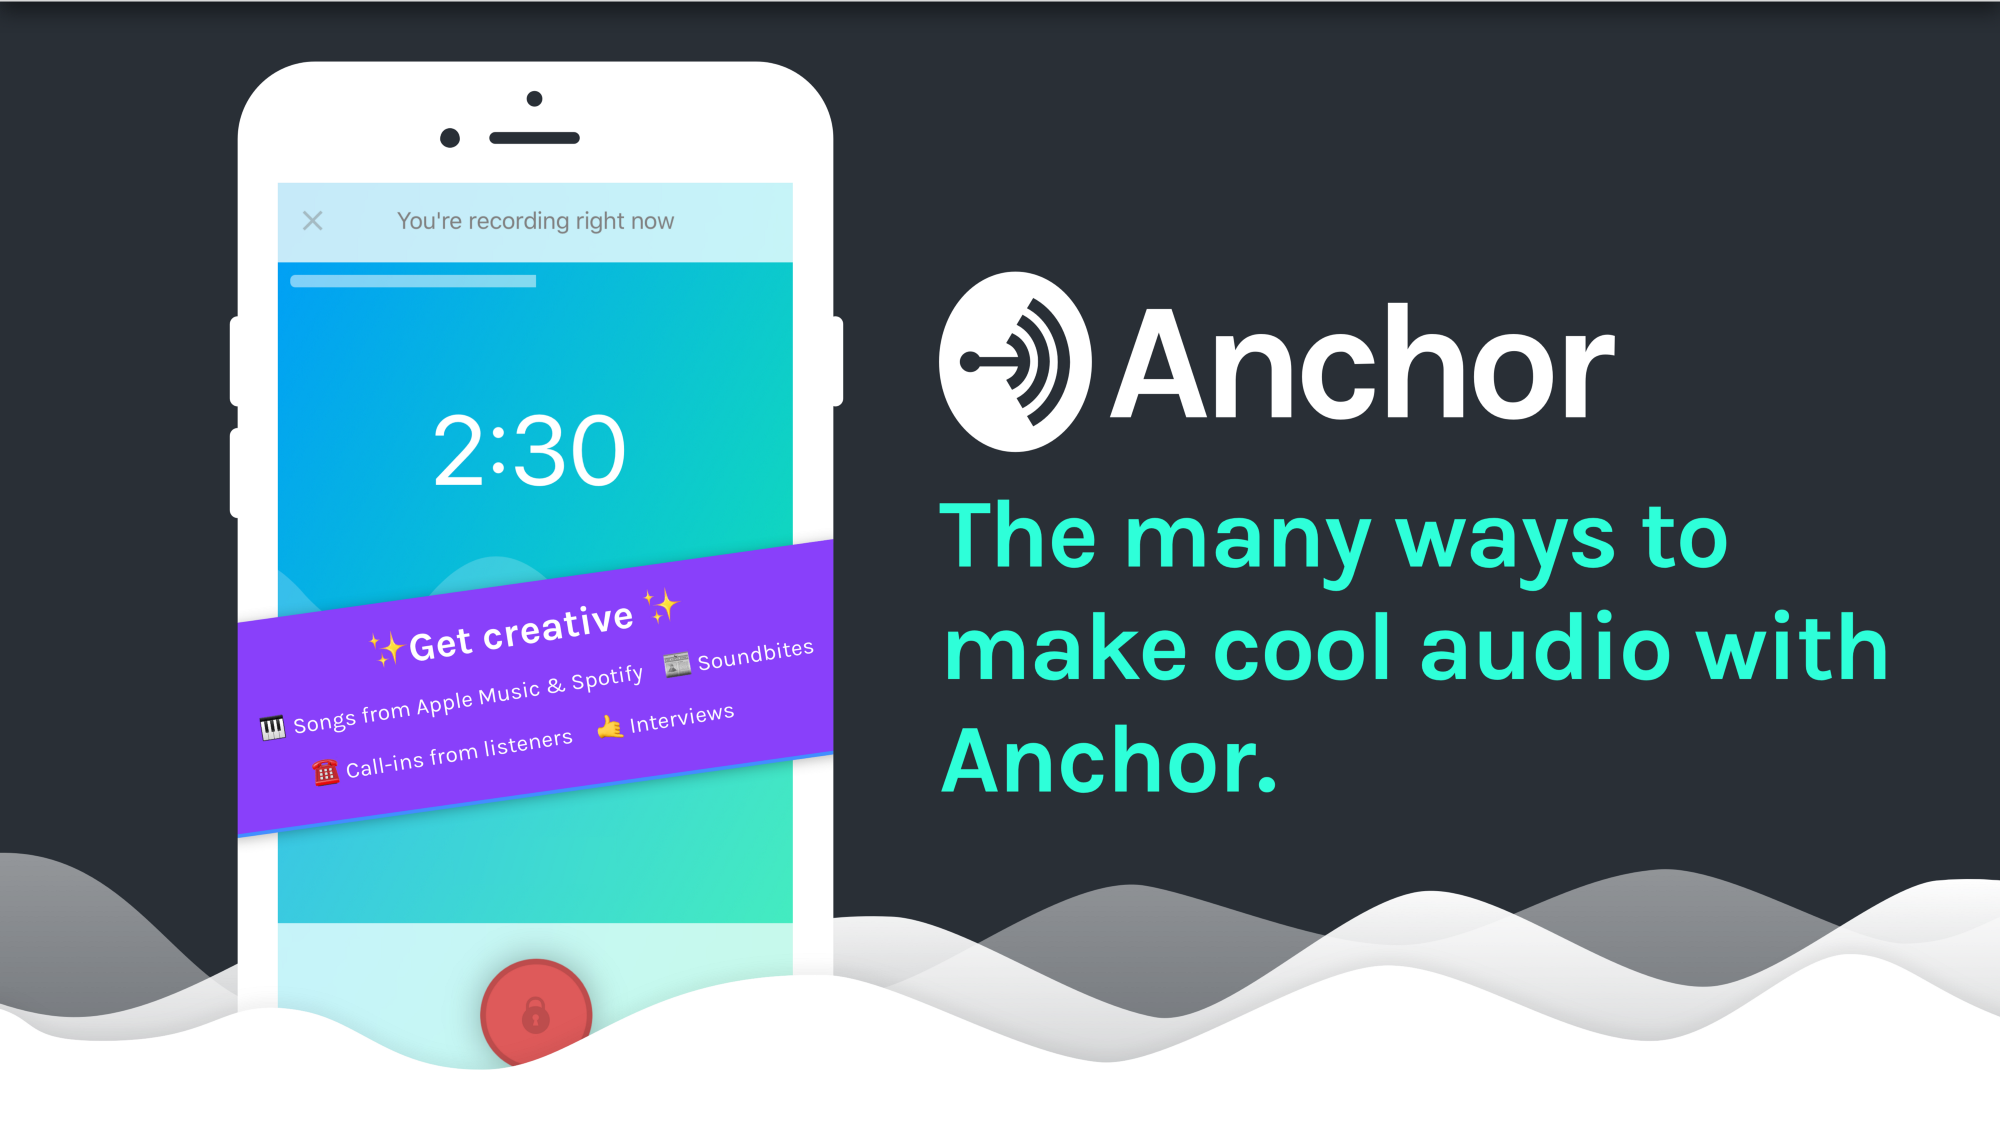 The many ways to make audio with Anchor